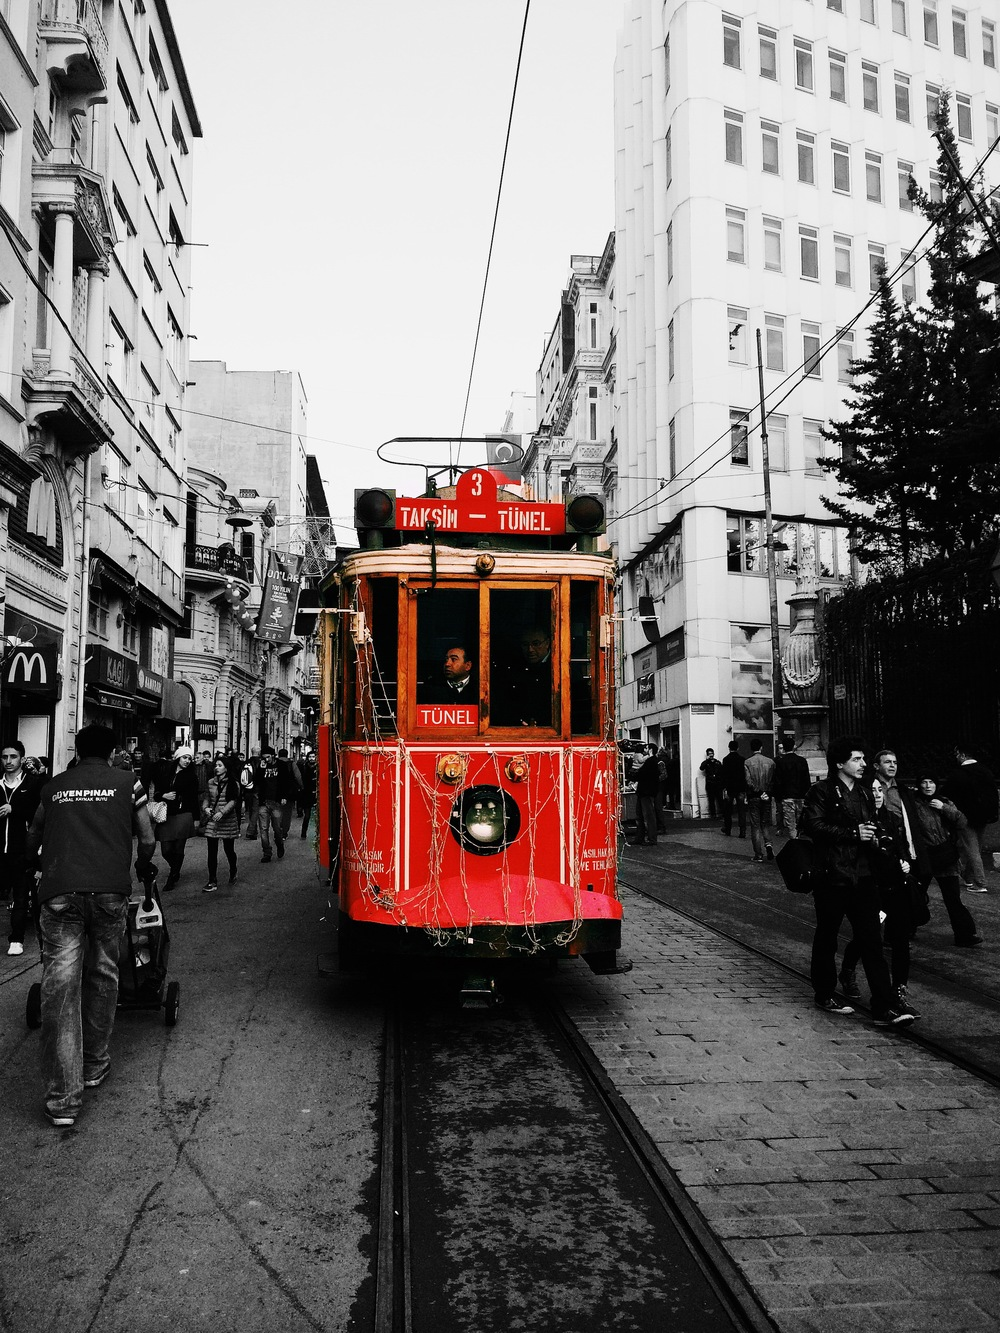 The historic tram line in Taksim. I love taking public transport in any place I go to because it gives me a sense of everyday life. Istanbul is easily walkable but it is also well connected by trams and metros.